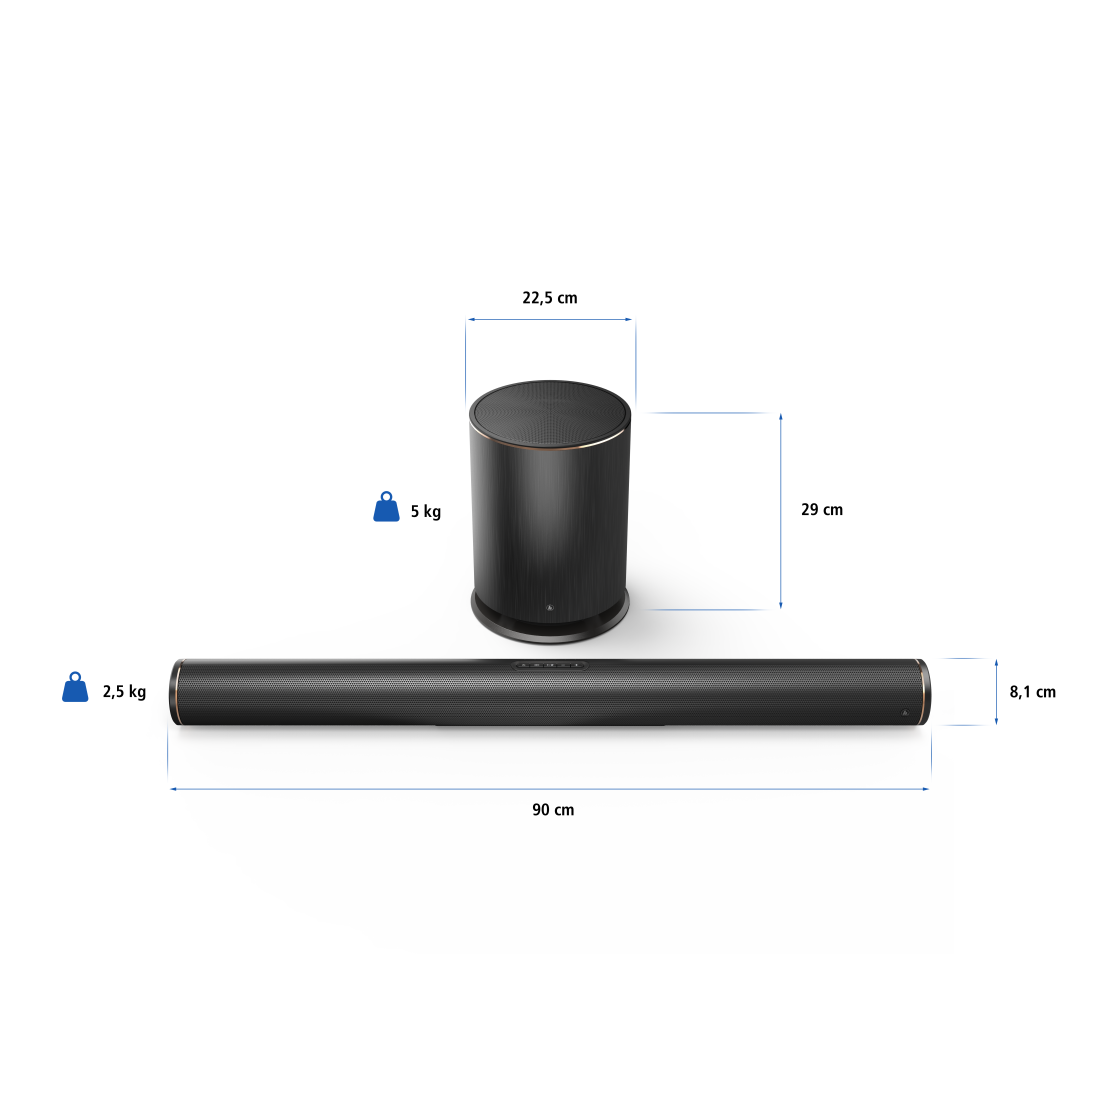 abx8 Druckfähige Abbildung 8 - Hama, Smart-TV-Soundbar 2.1 SIRIUM4000ABT, Wireless Subwoofer/Alexa/Bluetooth